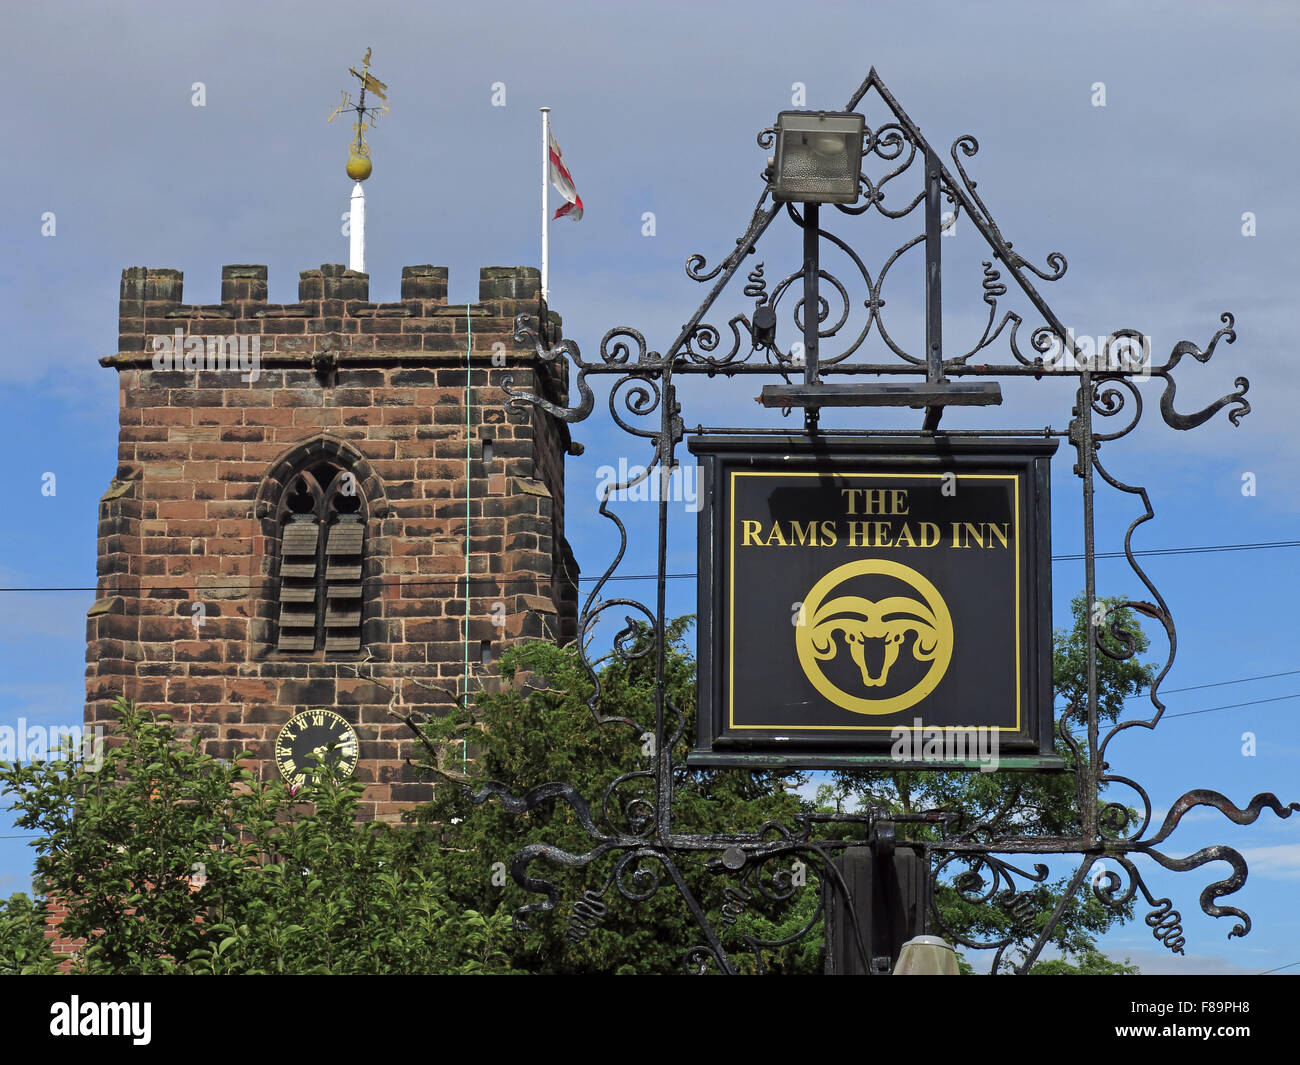 Rams Head inn sign & St Wilfrids Church tower ,Grappenhall,Warrington,Cheshire,England,UK - Stock Image